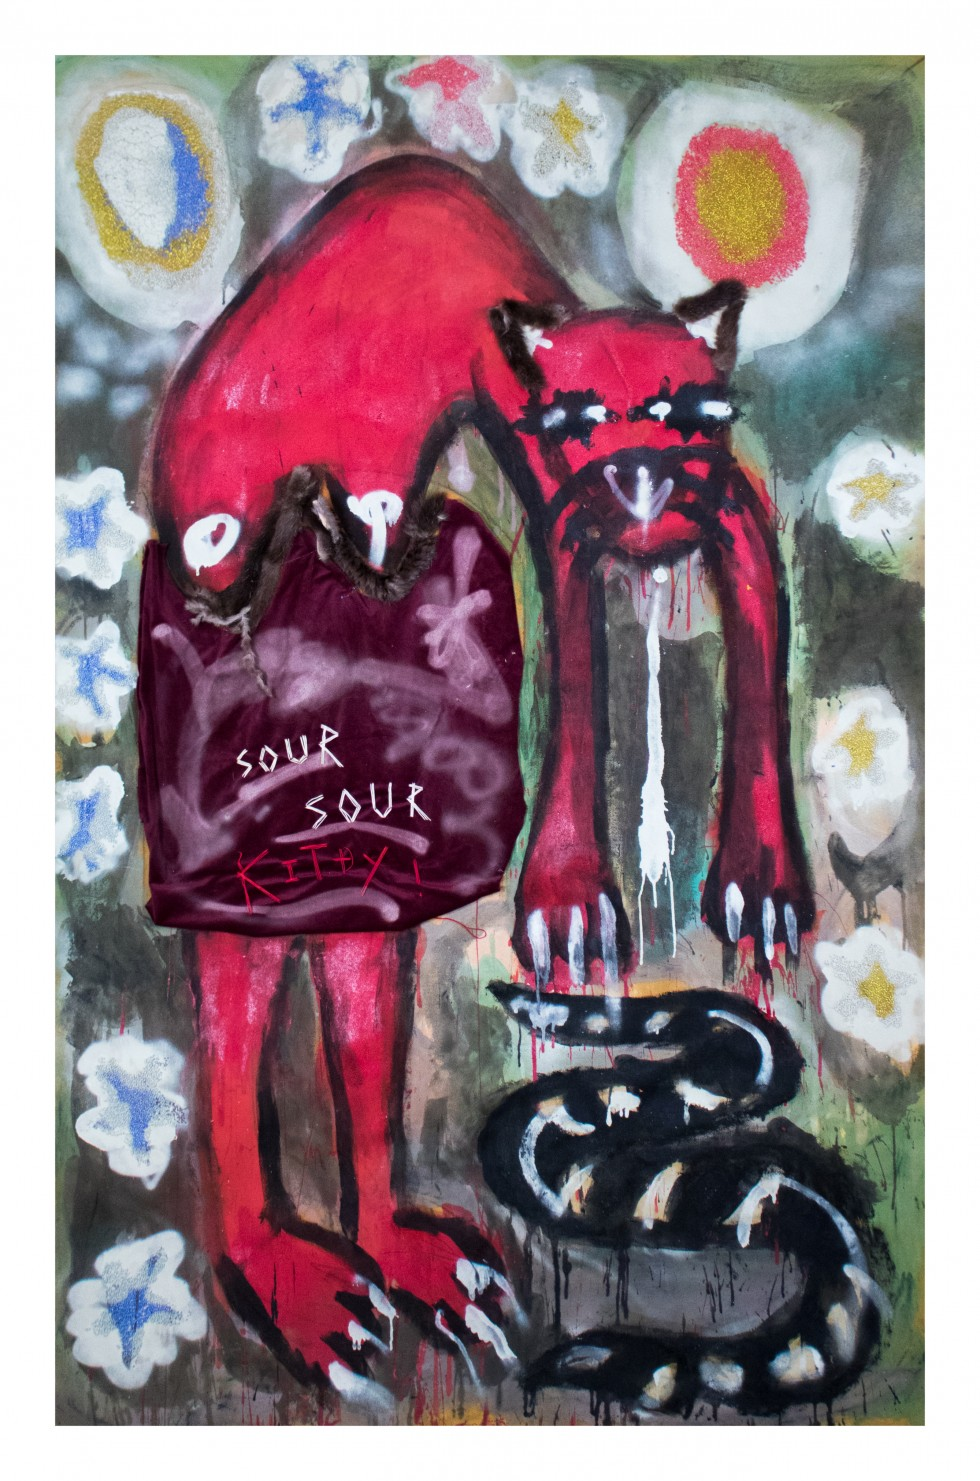 On a large Vertical yellow table cloth, a large cartoonish red cat with human like forms makes up the majority of the composition. The cat, is outlined on red and black spray paint. At the tip of the cats hands is a painted black stripped snake. The cat a